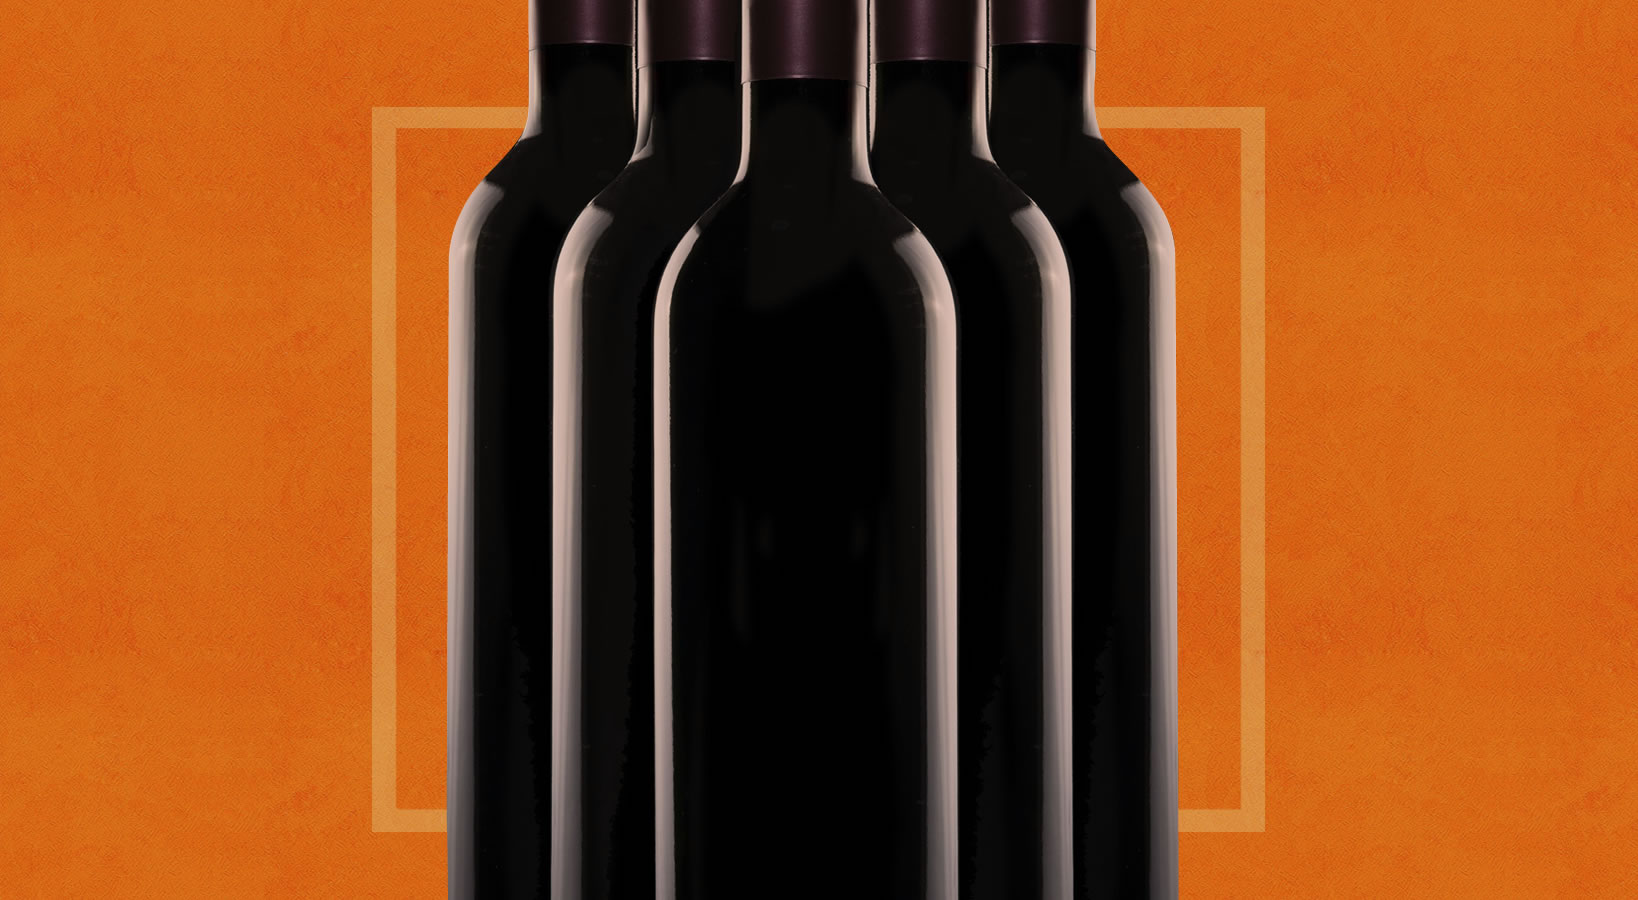 CellWine – An advanced cellar management system to manage your wine collections and let you trade your wine with other wine lovers.